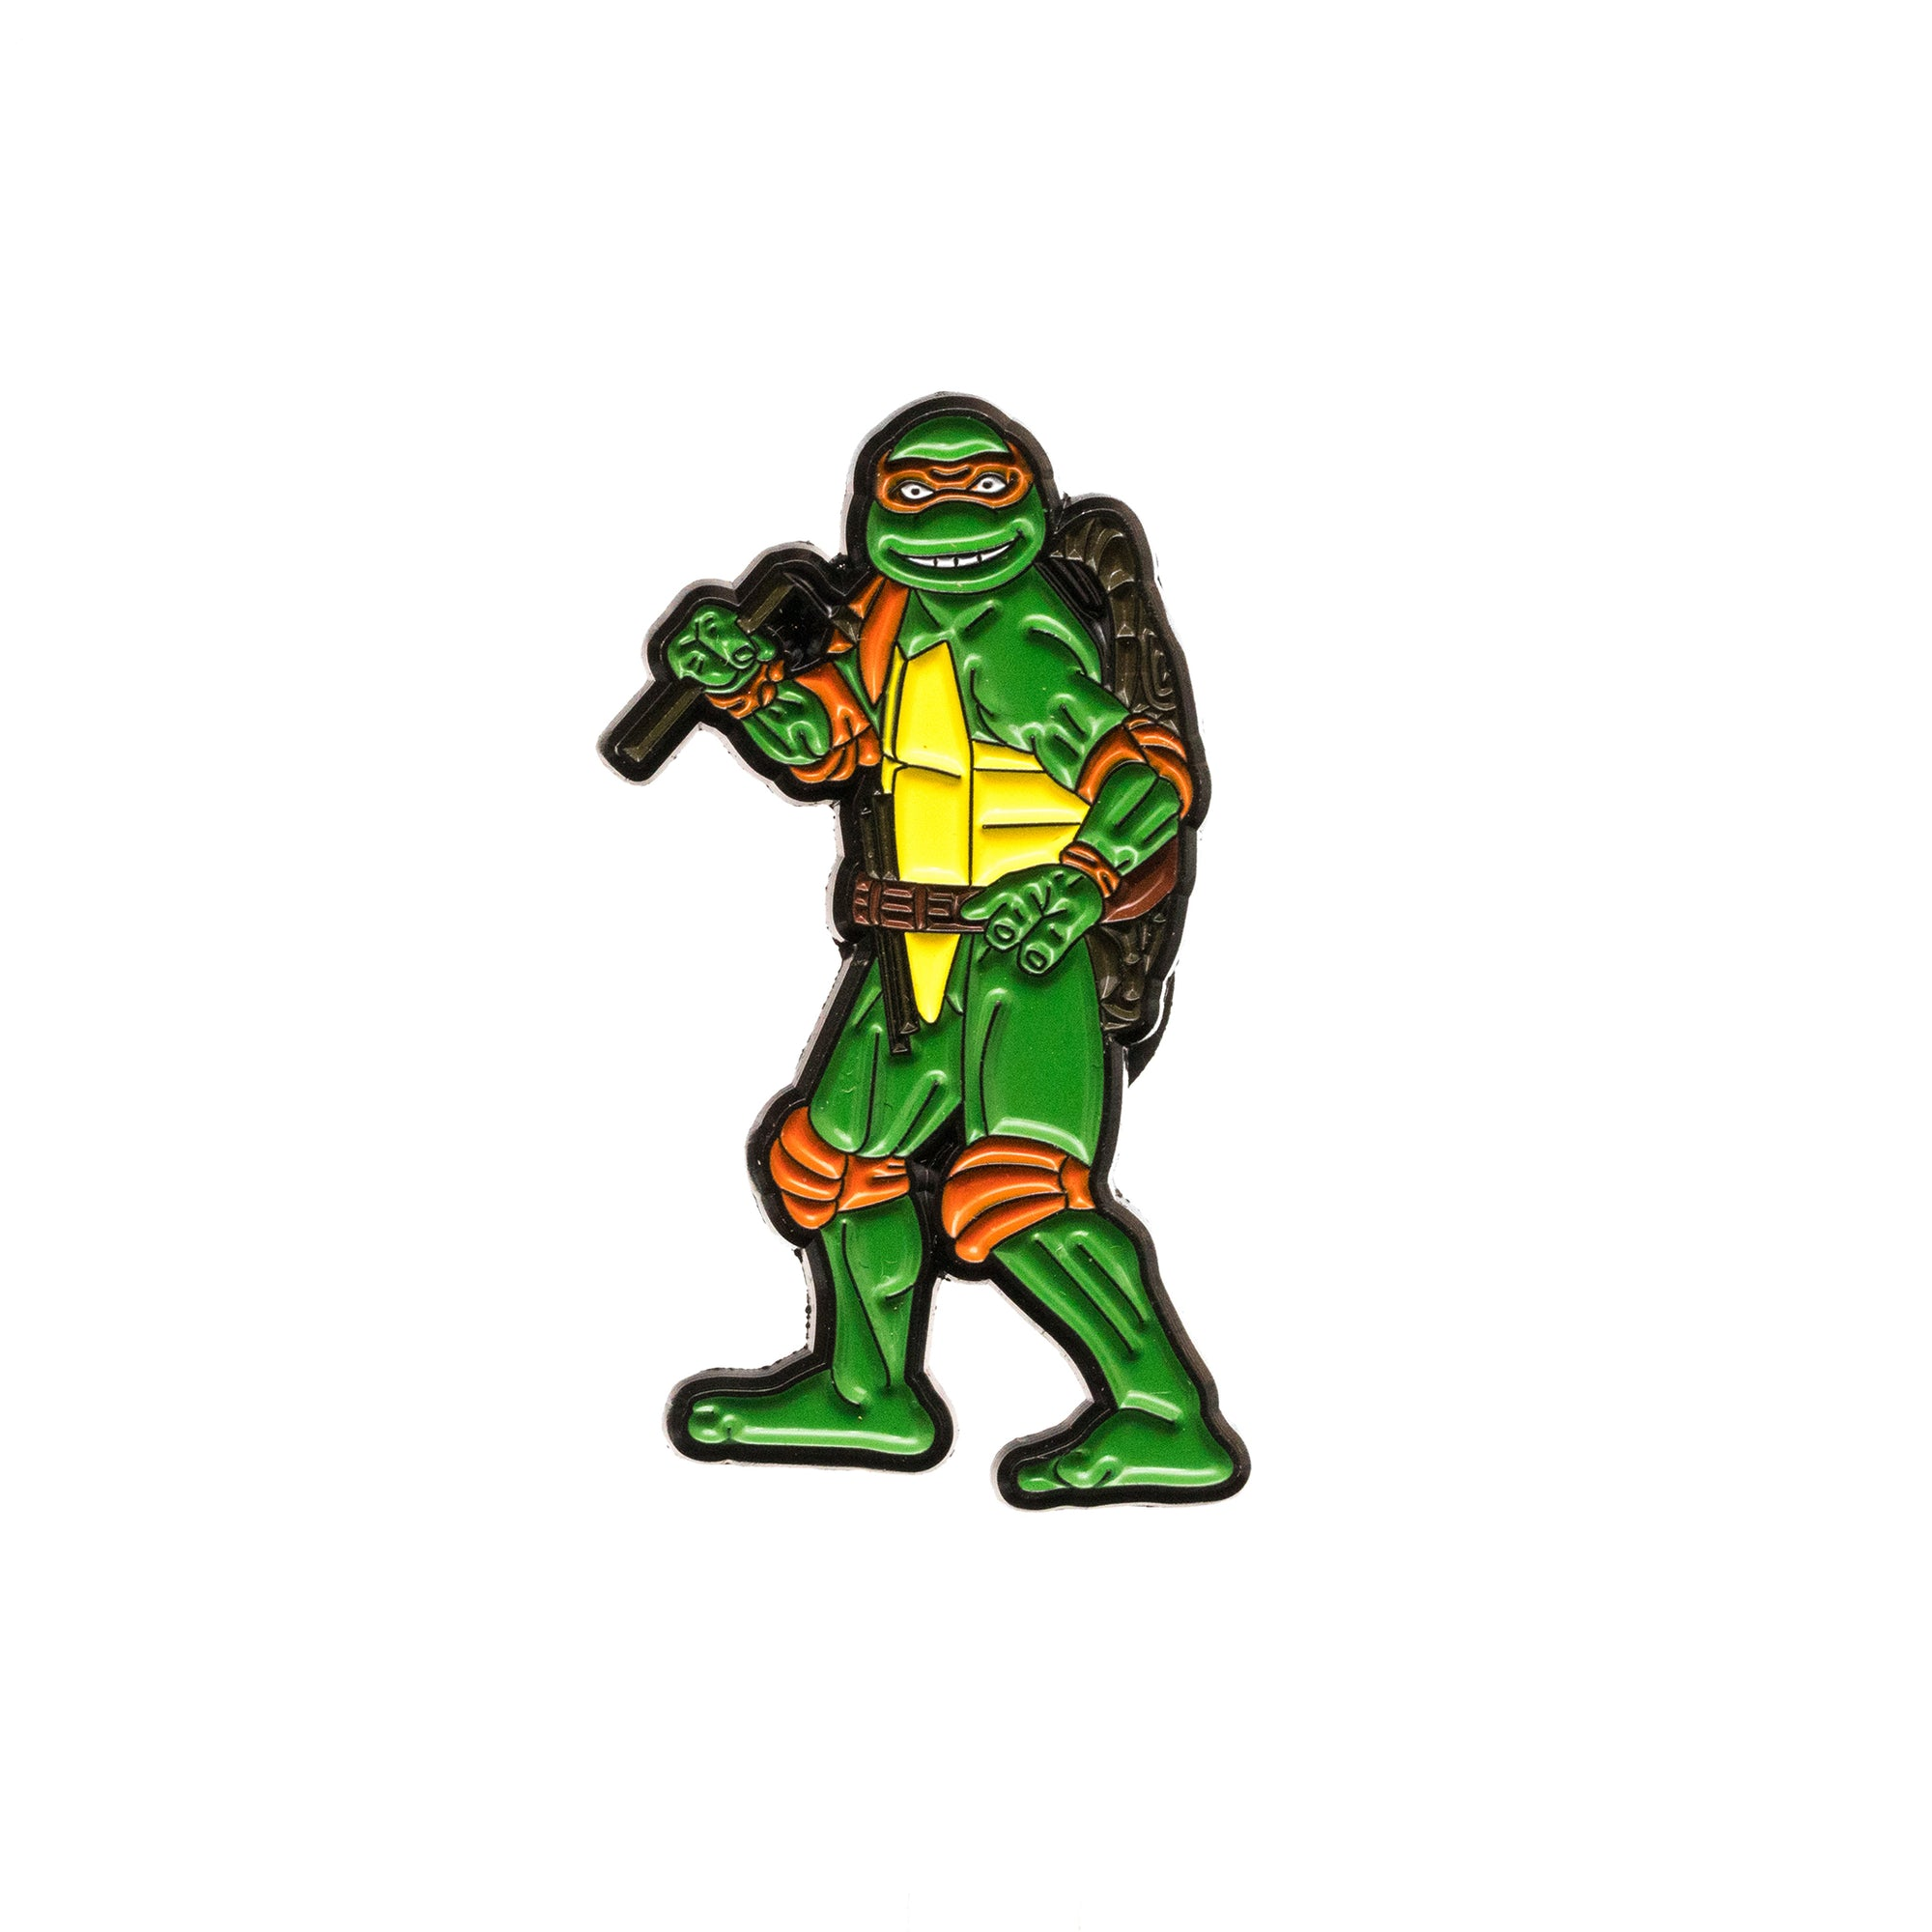 Michelangelo 1990 TMNT Movie Enamel Pin